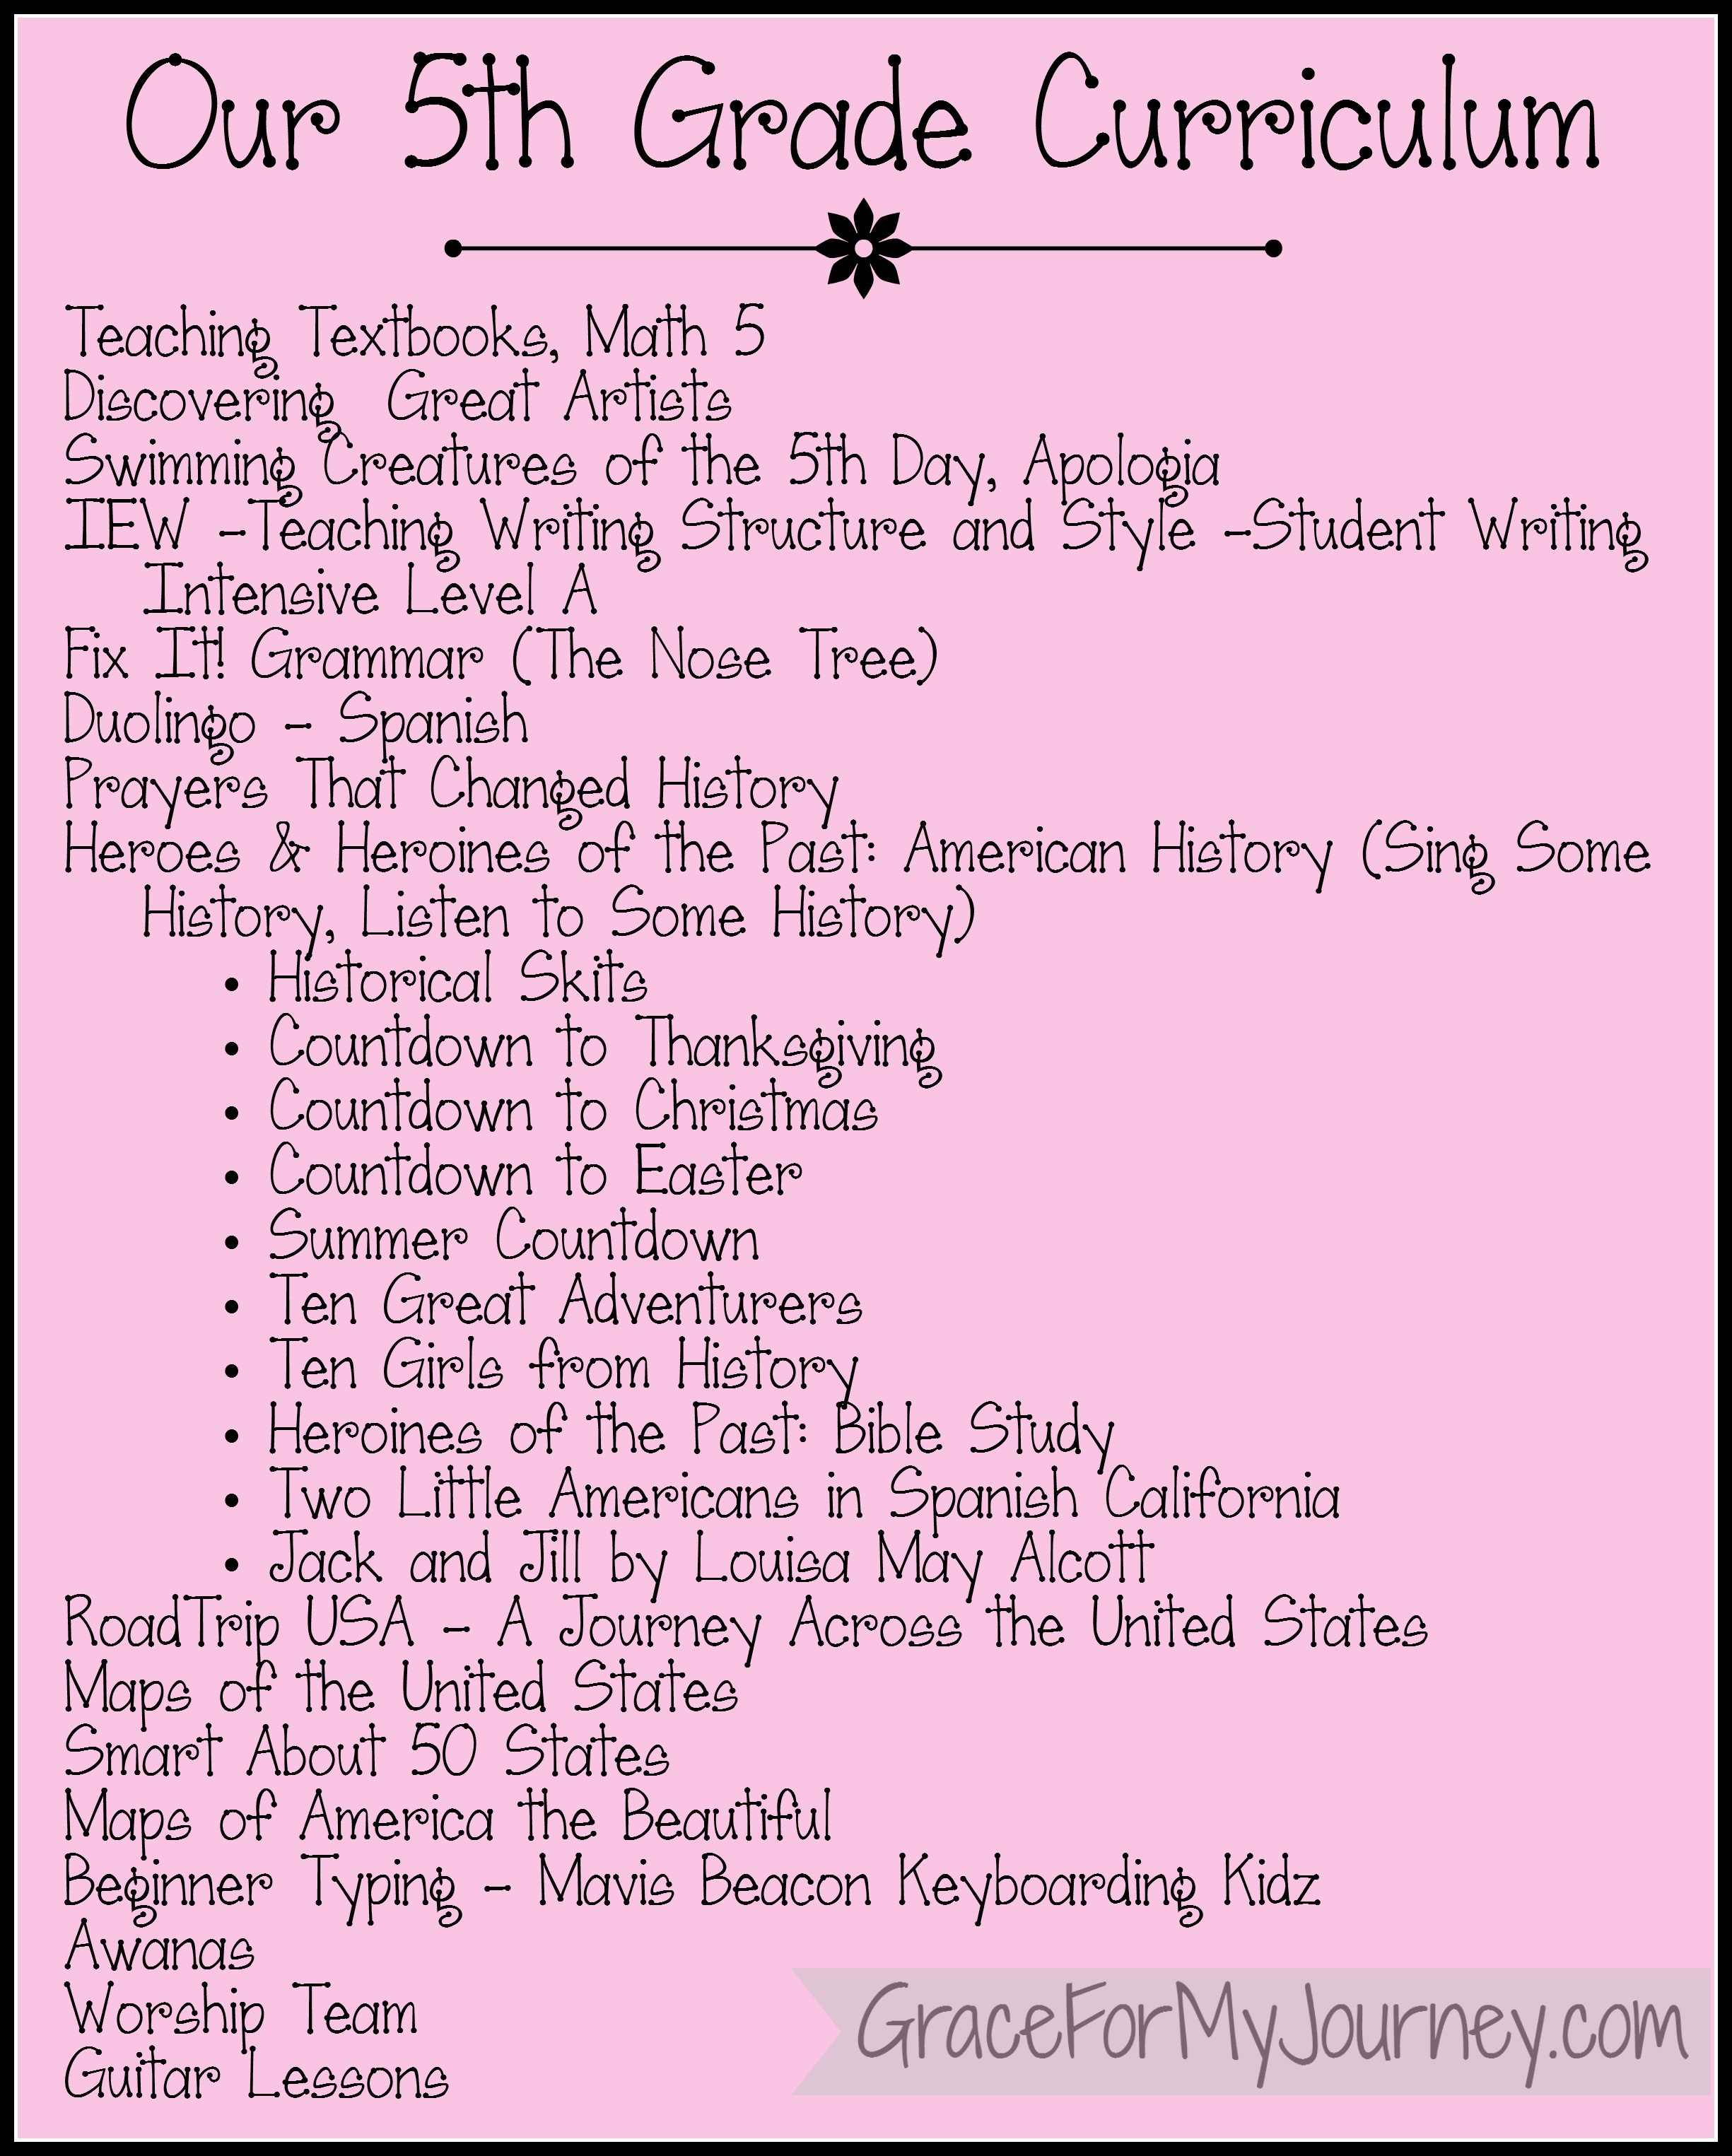 What Was On Your Homeschool Curriculum List Last Year